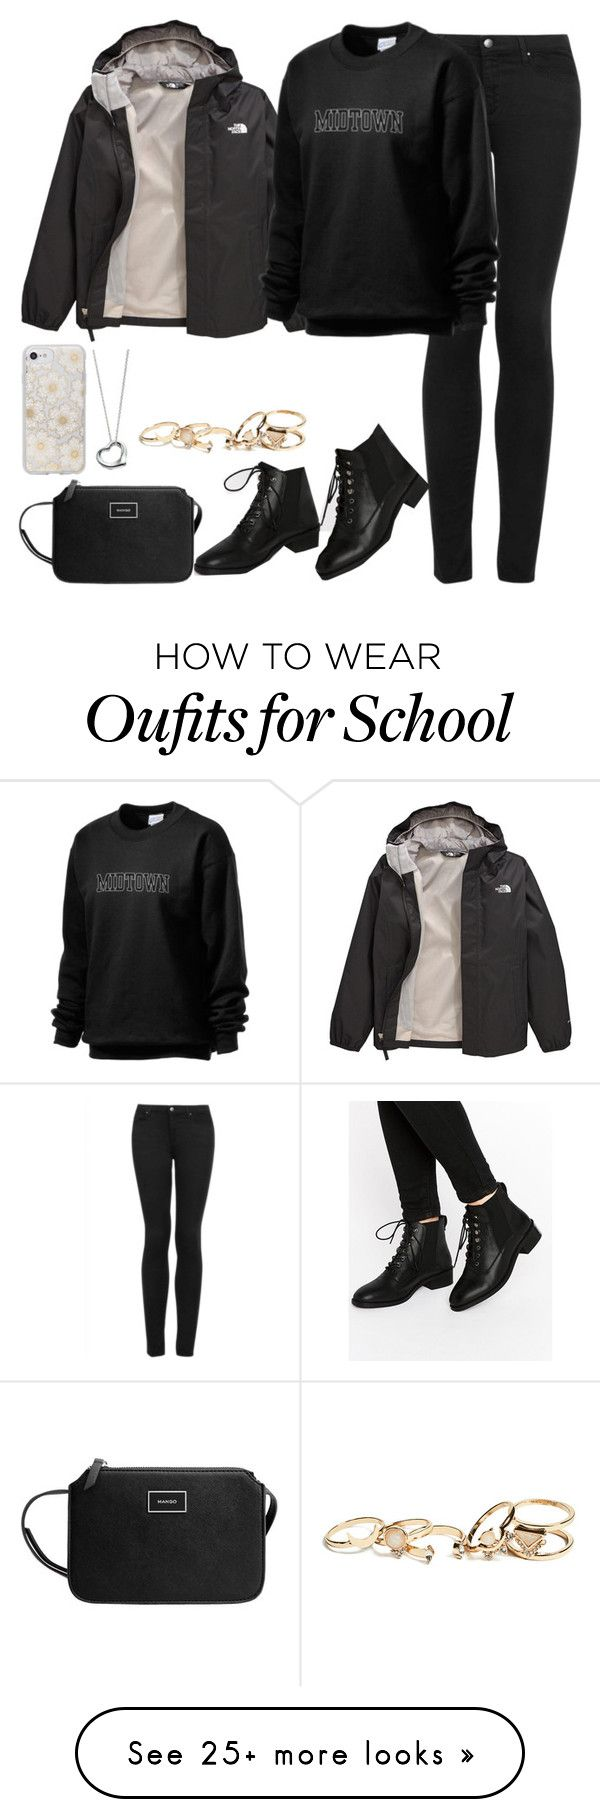 """""""Untitled #150"""" by findthefinerthings on Polyvore featuring Topshop, ASOS, MANGO, Sonix, Elsa Peretti, The North Face and GUESS"""